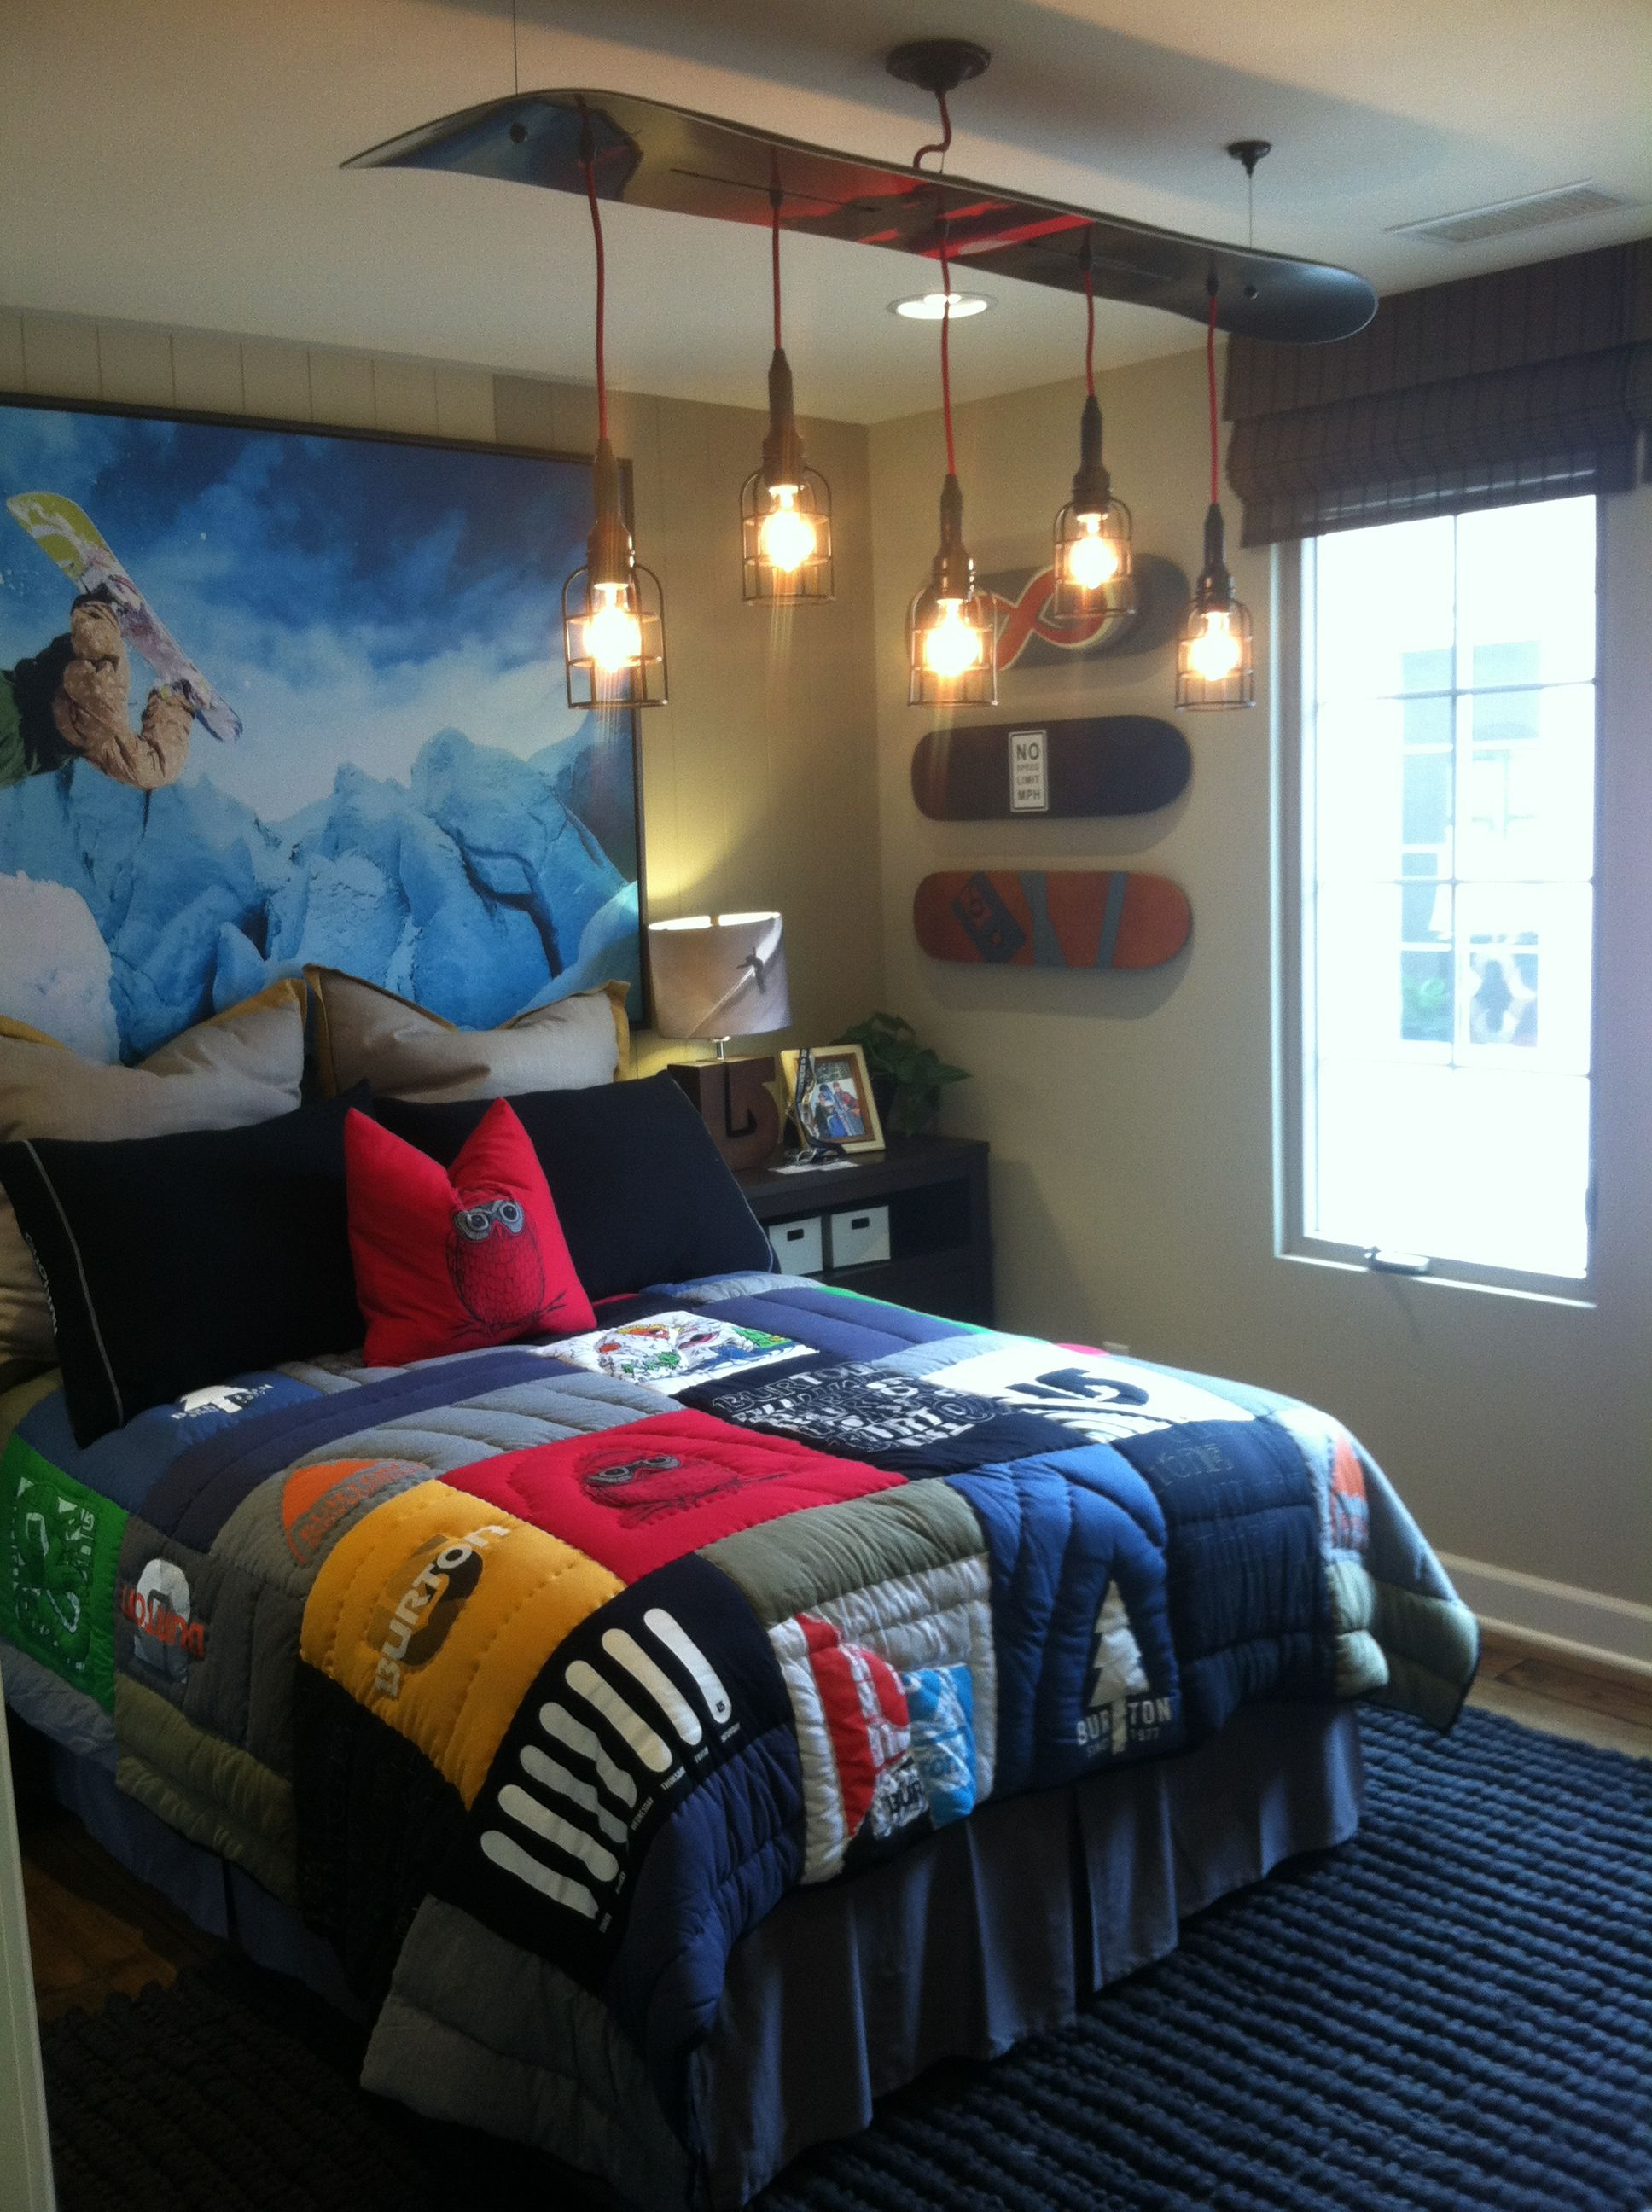 Awesome teen boys room irvineliving irvineinvesting - Teen boy bedroom ideas ...